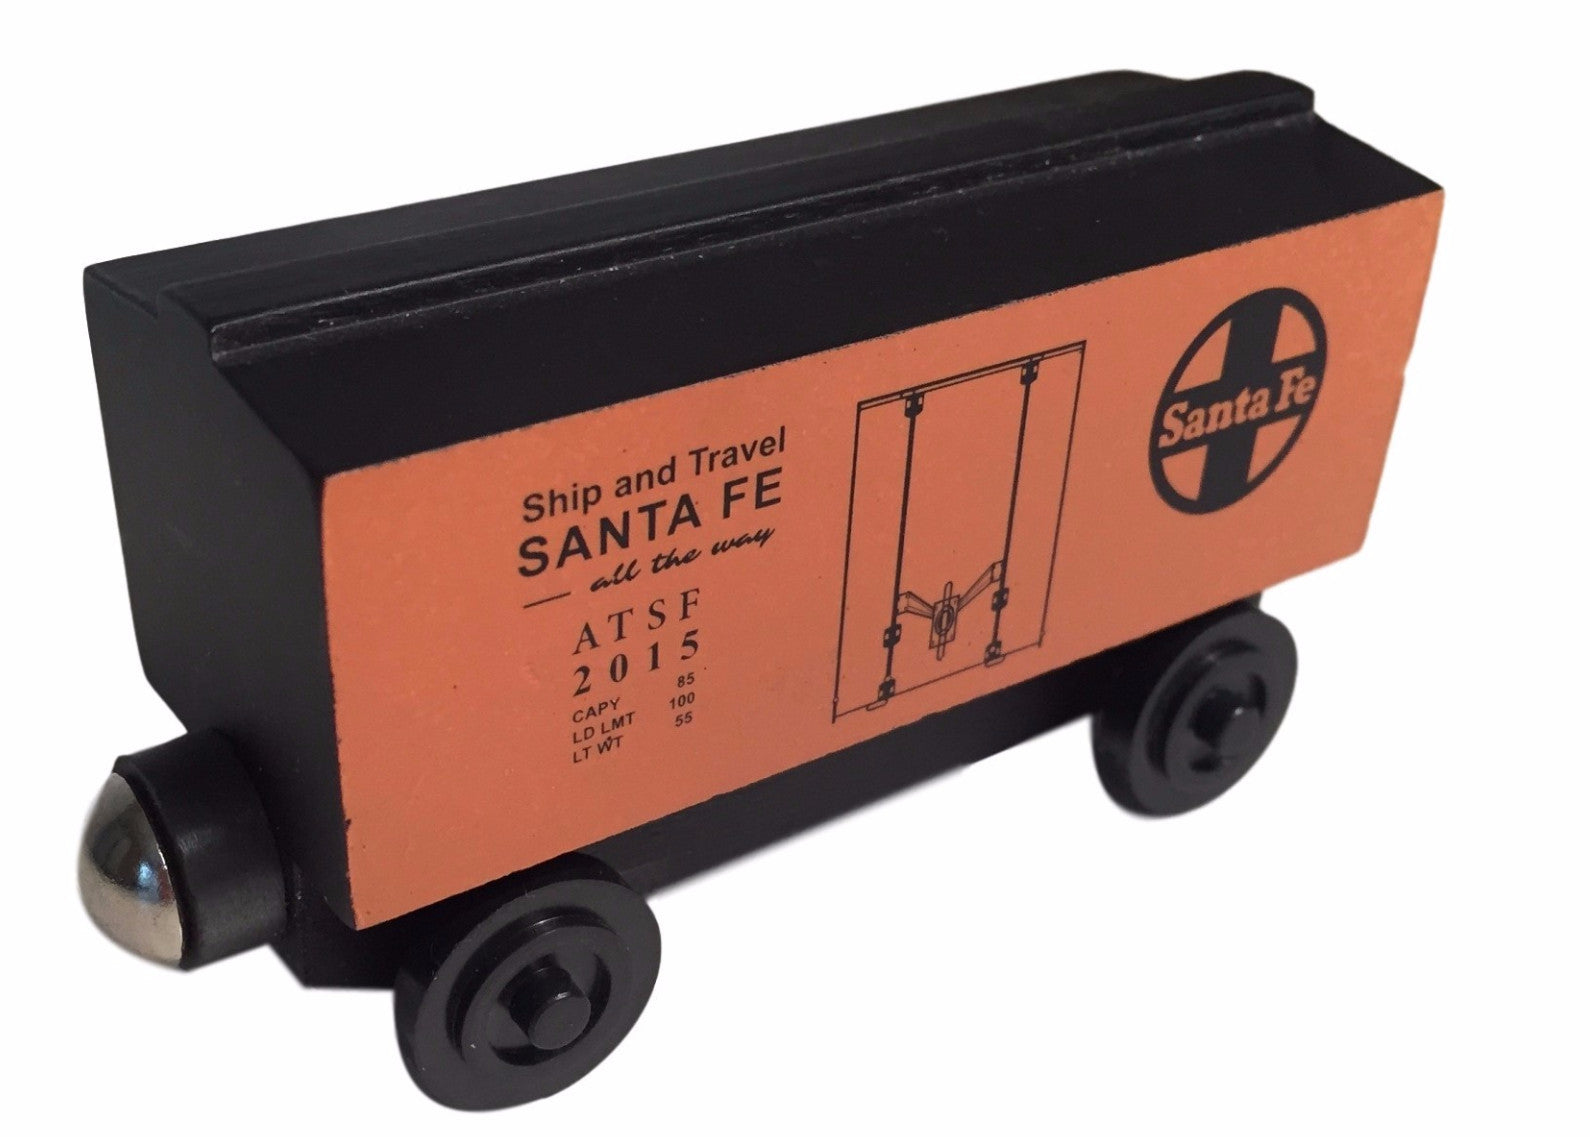 Whittle Shortline Railroad Santa Fe Orange Boxcar Wooden Toy Train